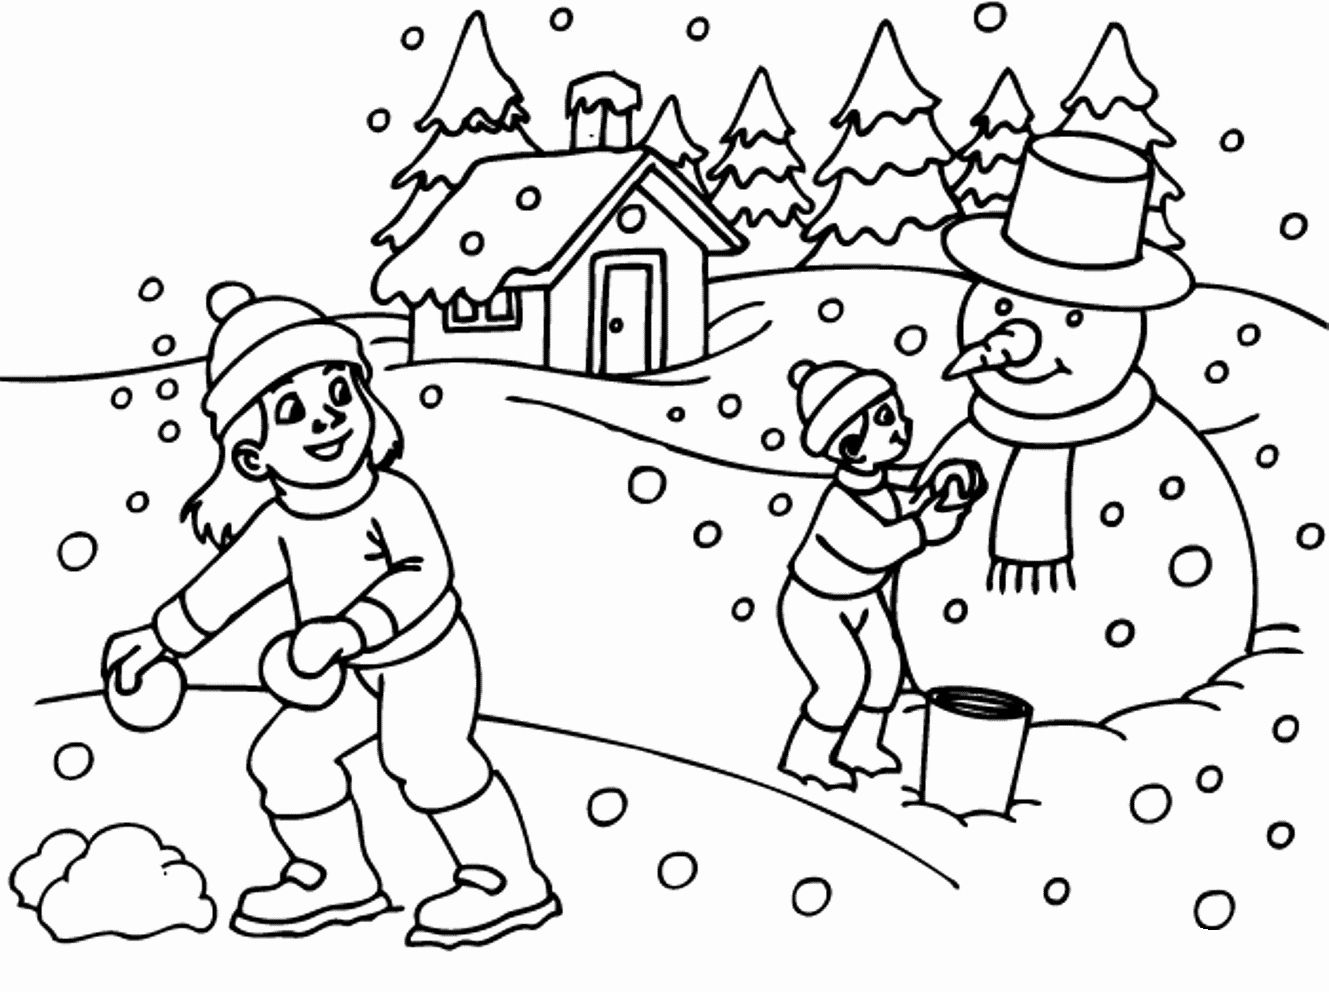 Free Printable Winter Holiday Coloring Pages Awesome Coloring Page For Kids Free Printa Coloring Pages Winter Summer Coloring Pages Kindergarten Coloring Pages